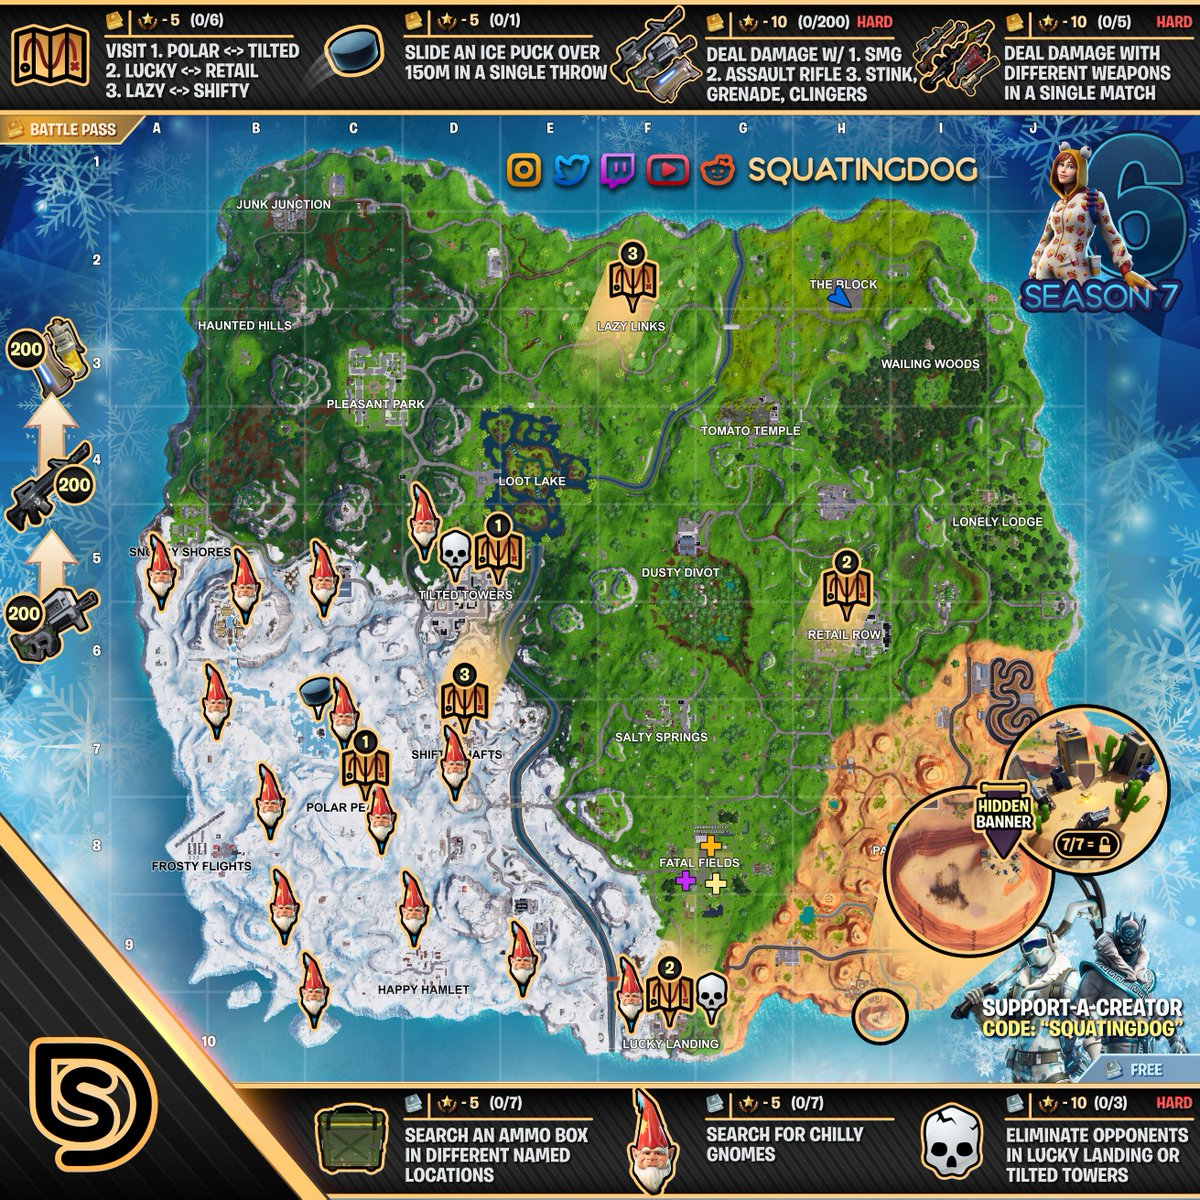 Full Cheat Sheet With All Season 7 Week 6 Fortnite